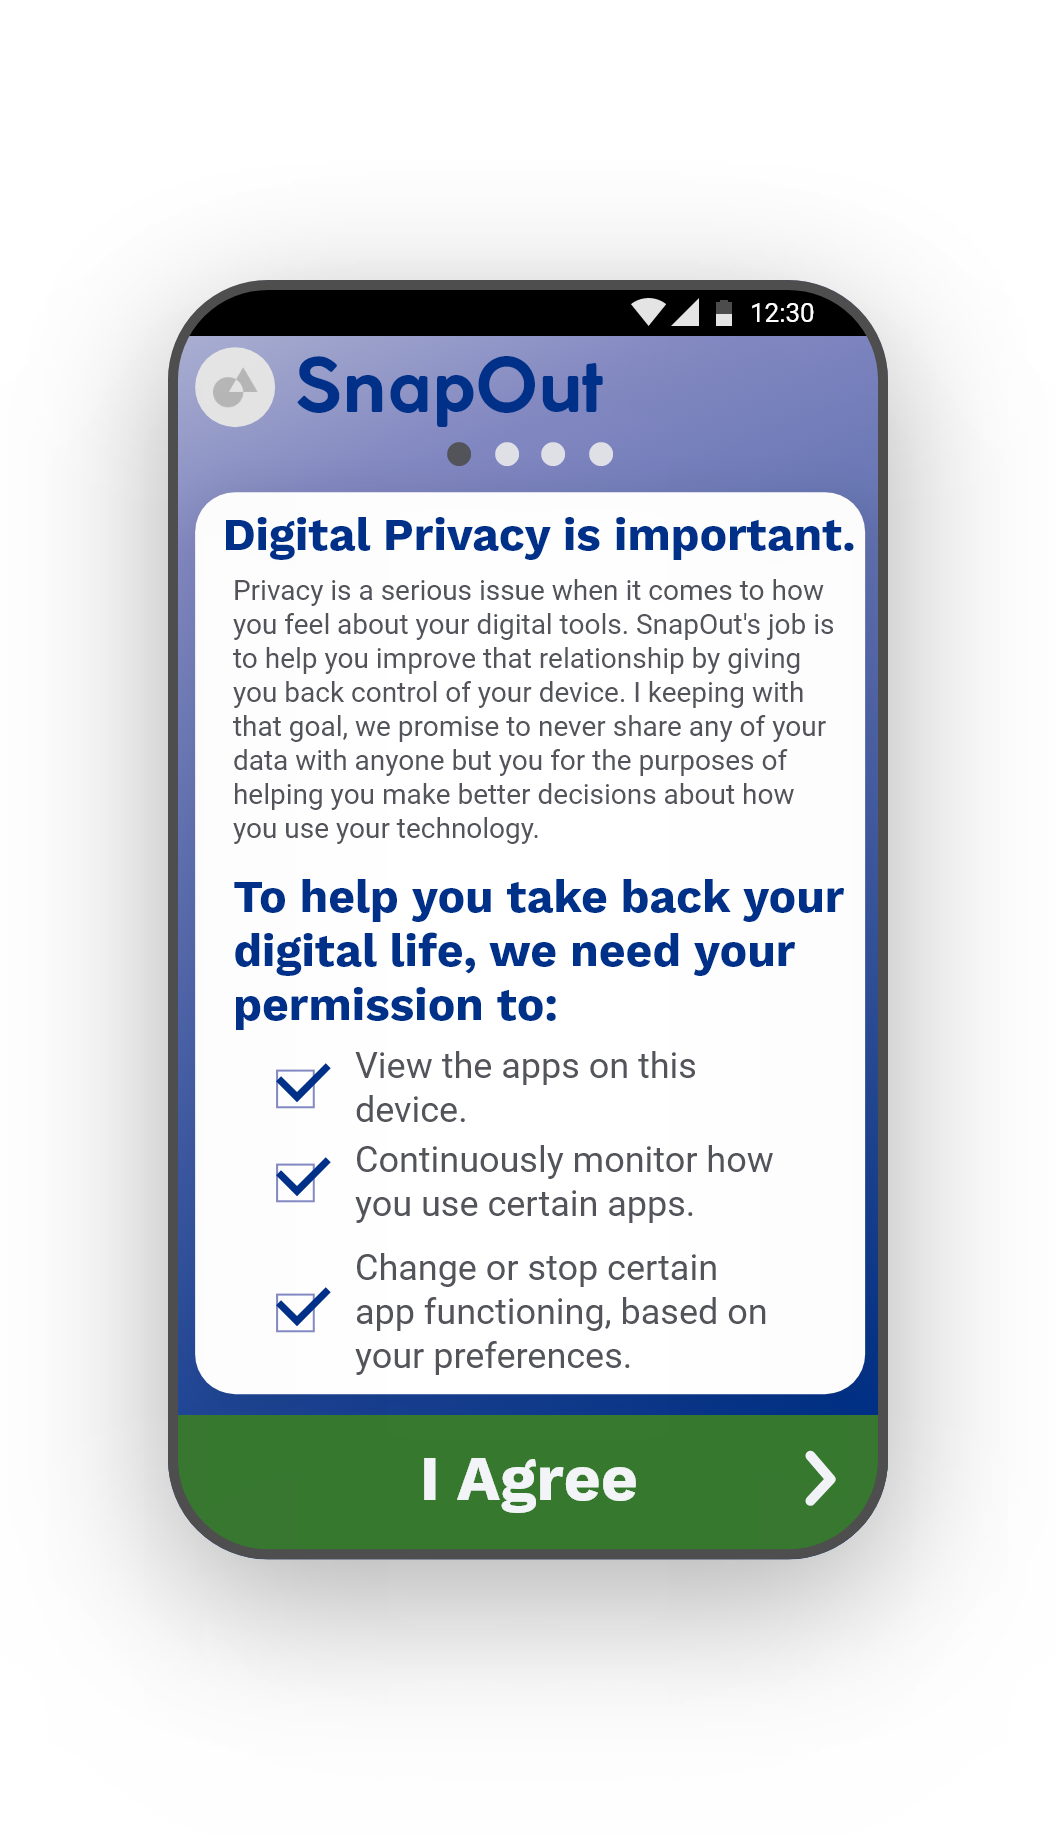 Onboarding3- PrivacyConfirm@2x